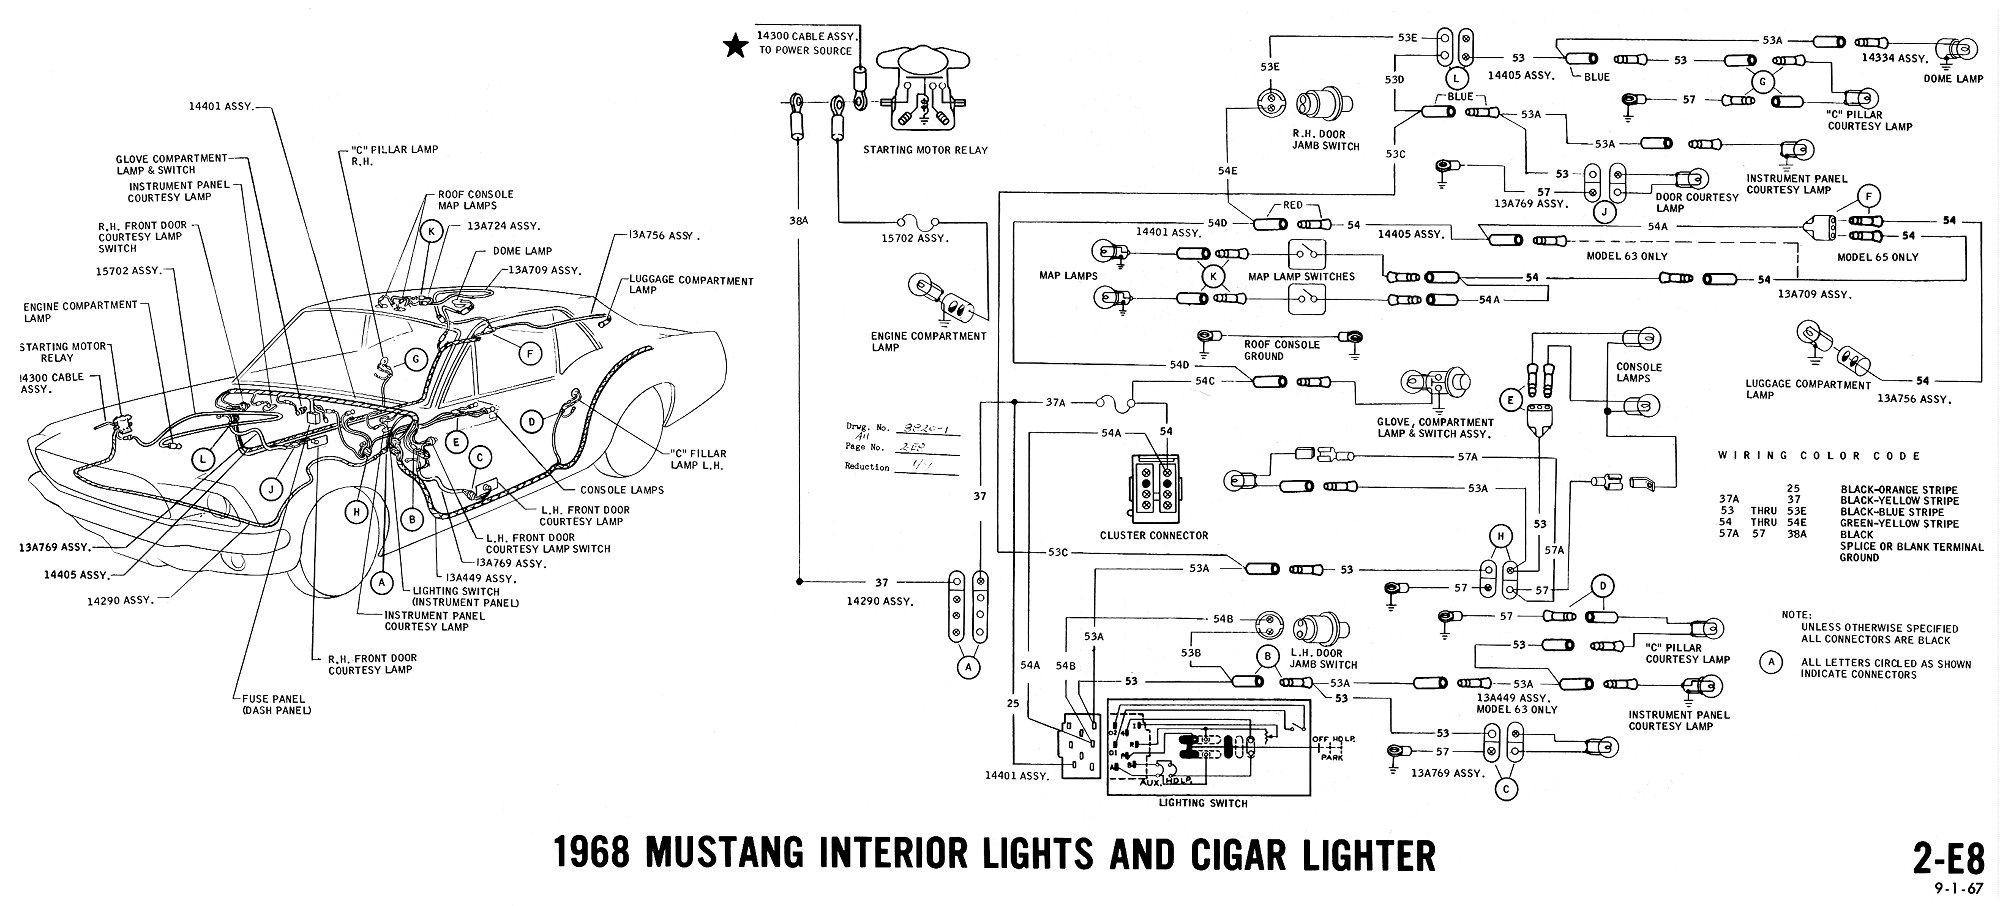 E8 1968 mustang wiring diagrams evolving software mustang wiring diagrams at nearapp.co